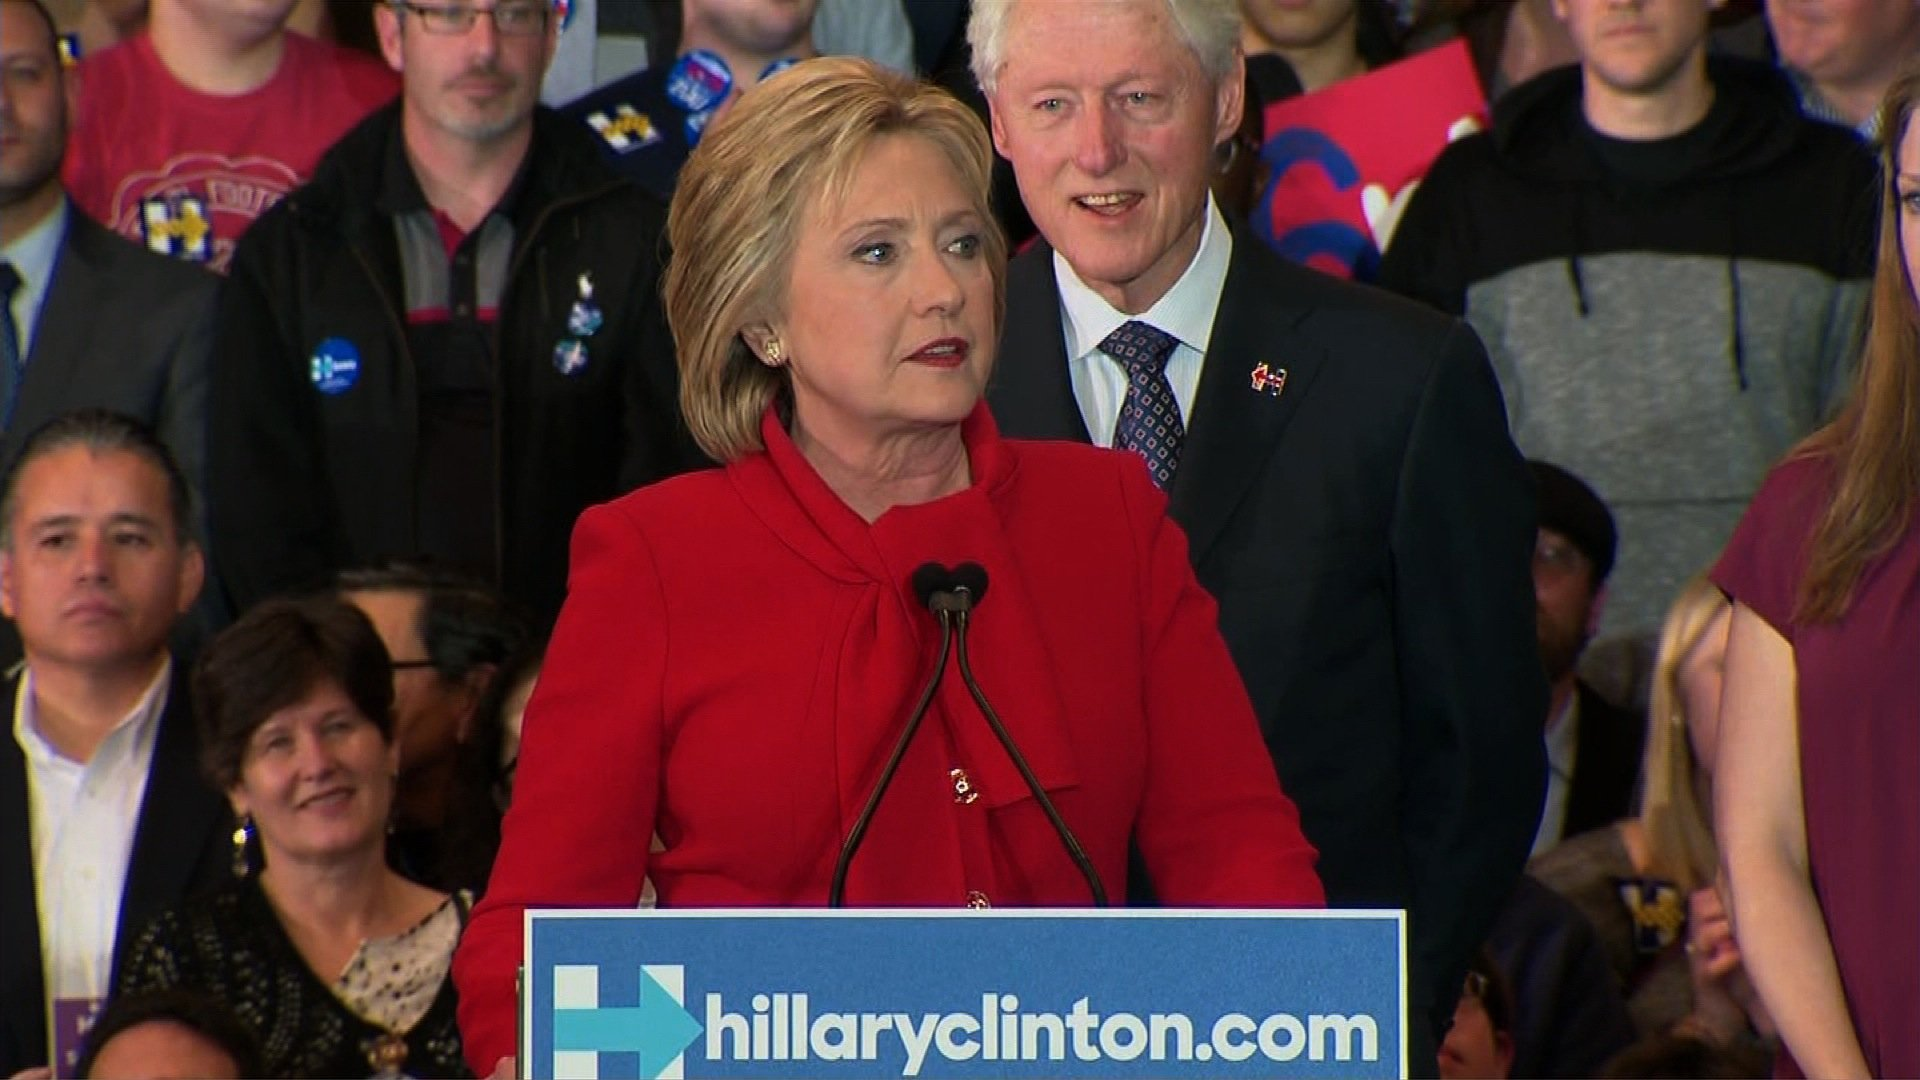 Hillary Clinton speaks in front of a crowd of supporters after the 2016 Iowa Caucus.